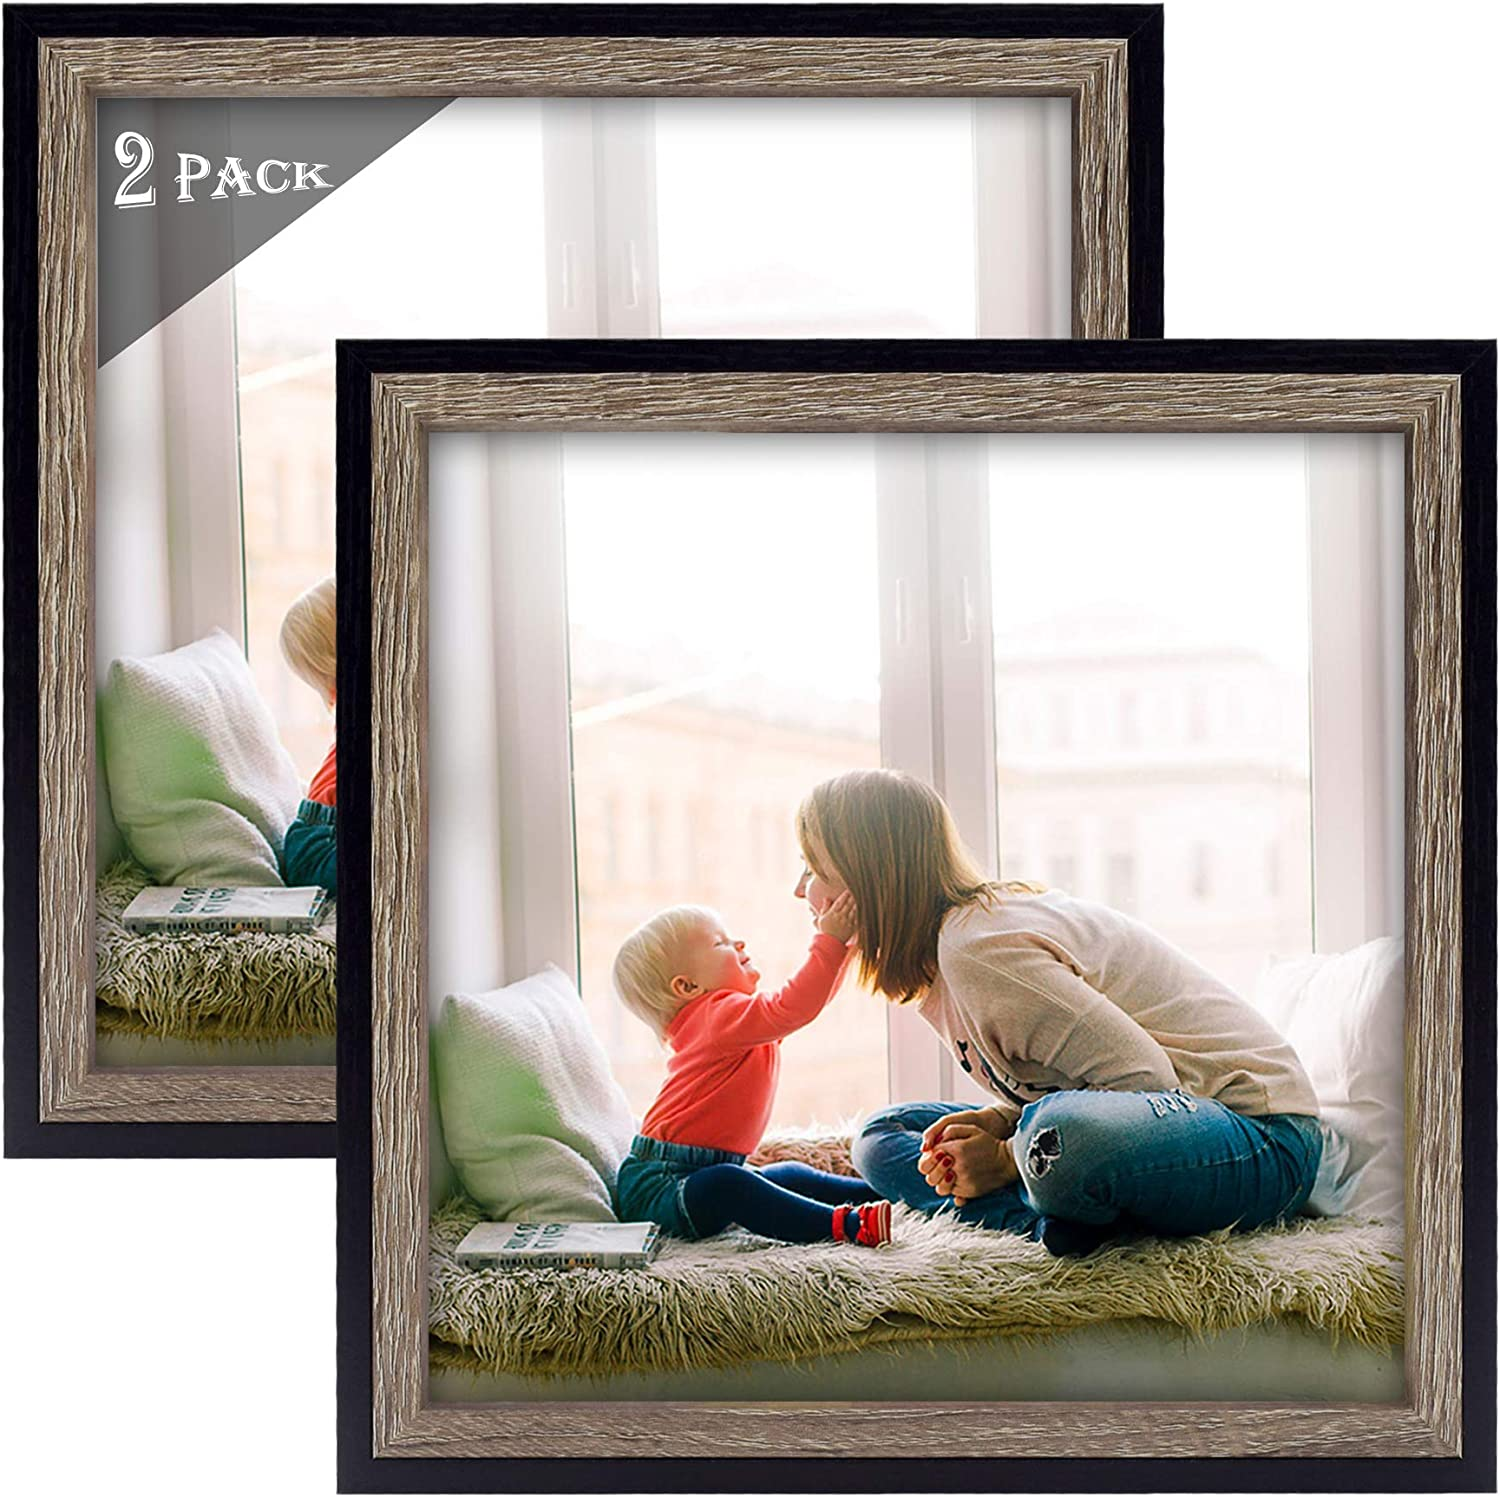 Golden State Art, Set of 2 Multicolored Molding Picture Frame for Desk Display and Wall Display - Great for Baby Pictures, Weddings, Portraits (8x8, Black/Grey)